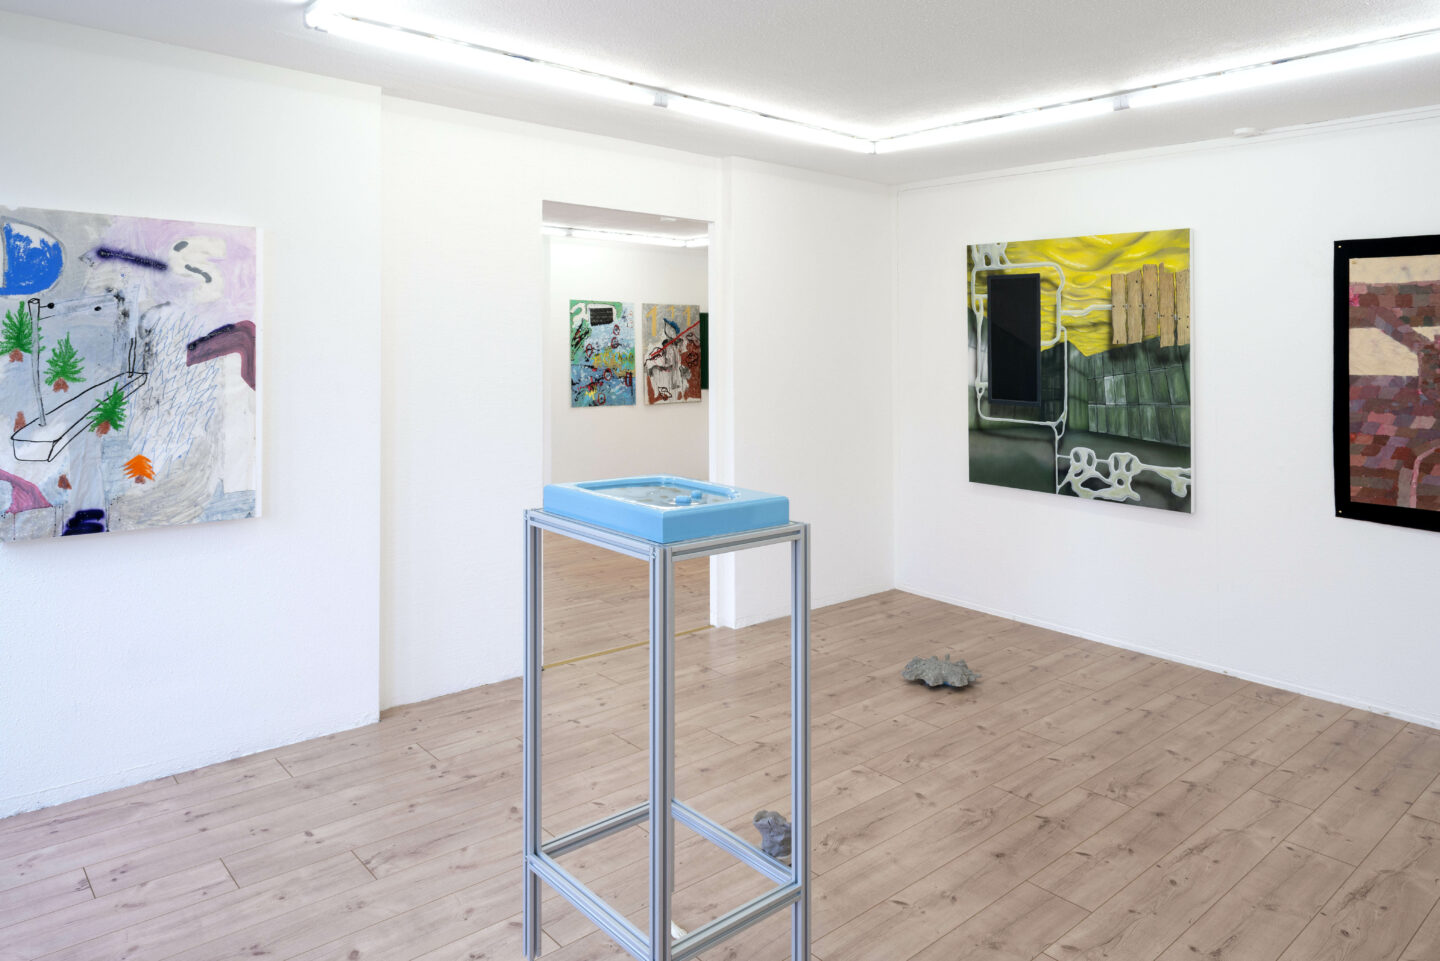 Exhibition View Ruben Stettler and Kevin Aeschbacher Groupshow «Module für Ordnung» at HAMLET, Oerlikon, Zurich, 2019 / Photo: Flavio Karrer / Courtesy: the artist and HAMLET